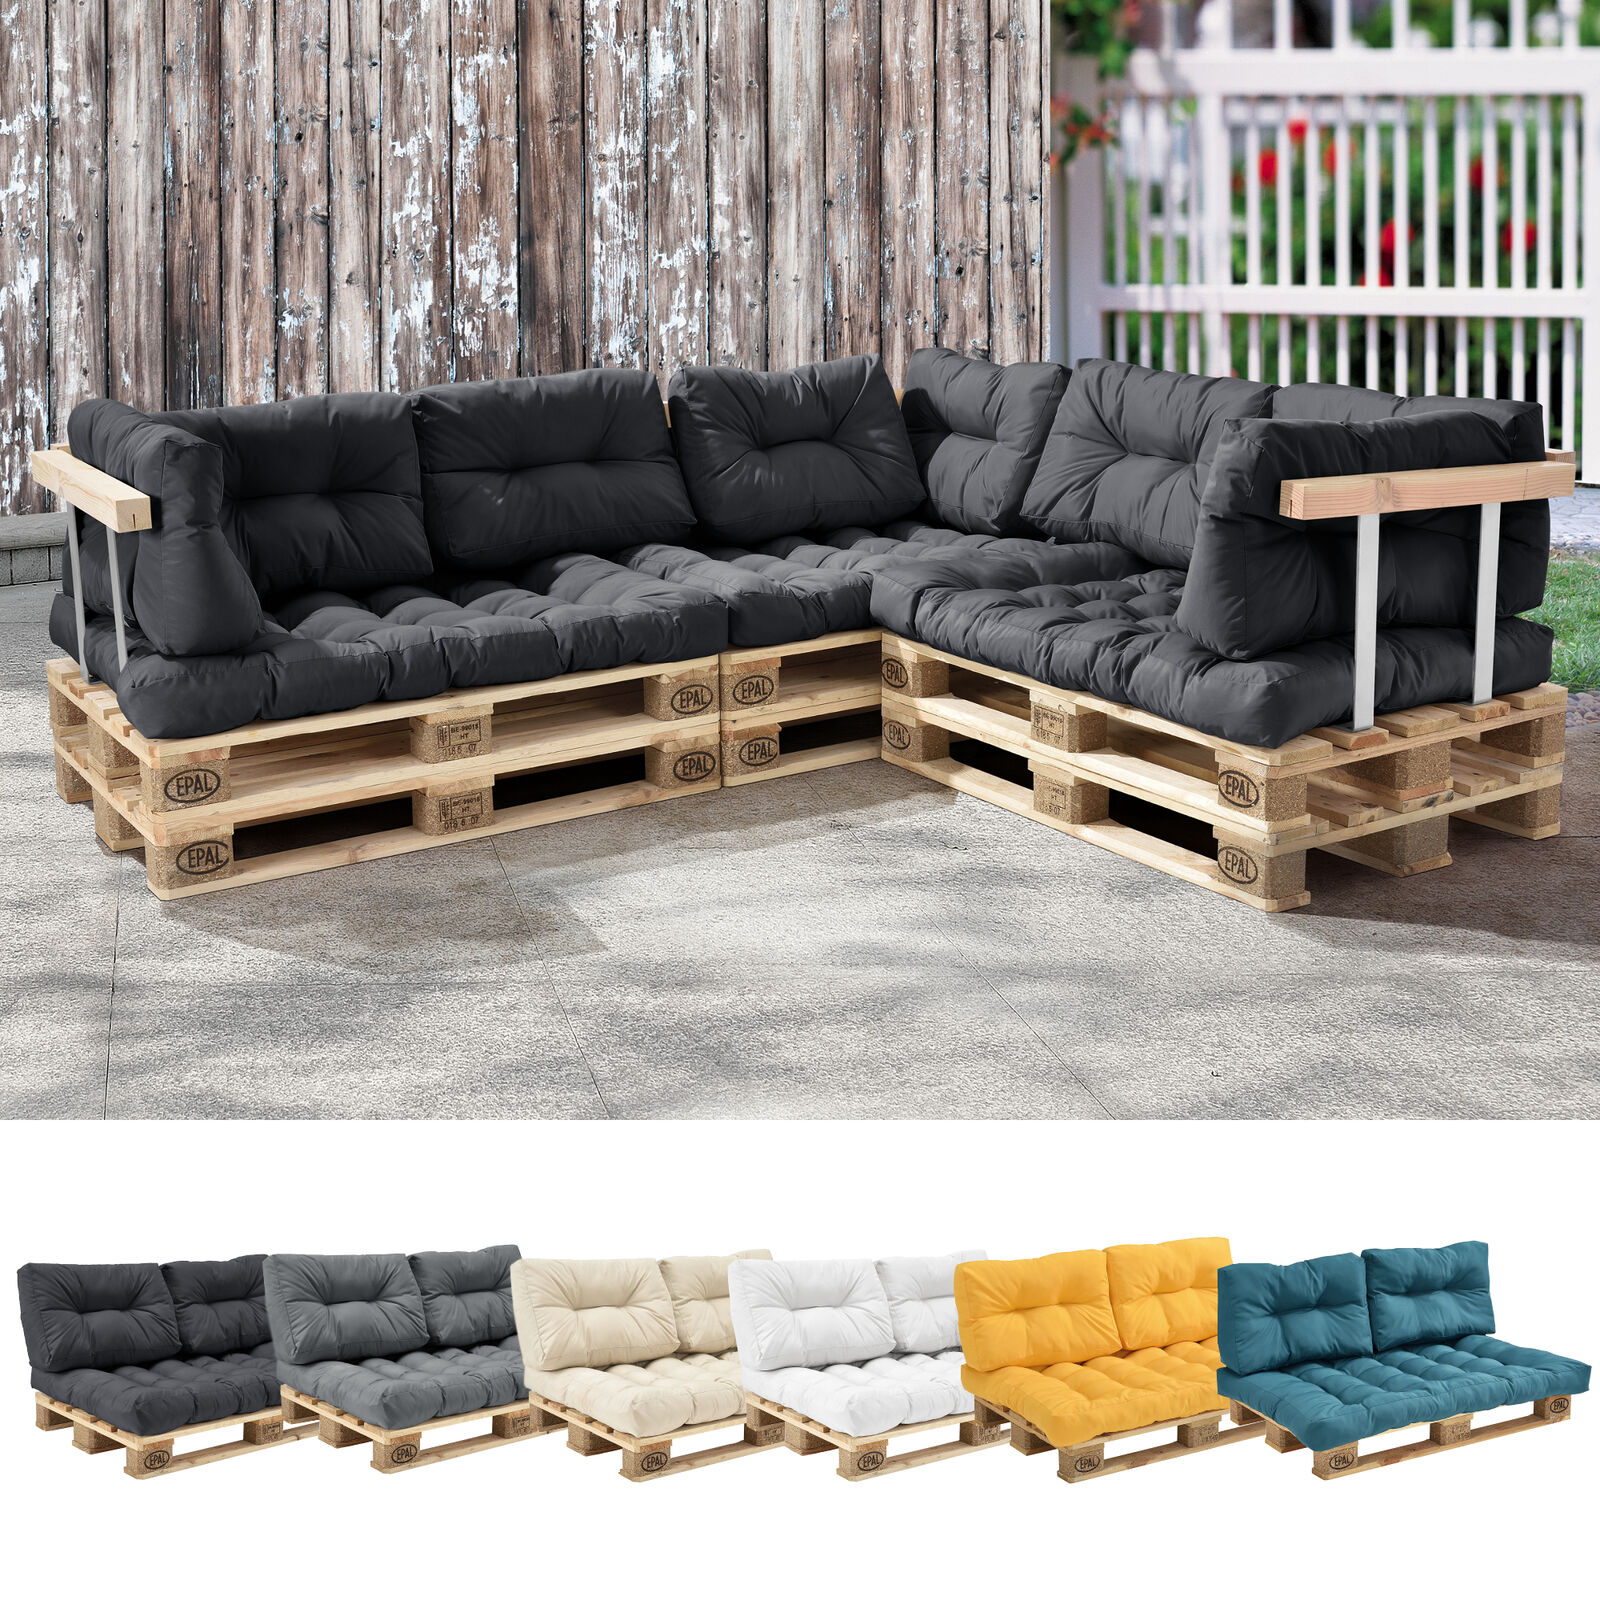 en casa palettenkissen in outdoor paletten kissen sofa polster sitzauflage eur 34 19. Black Bedroom Furniture Sets. Home Design Ideas